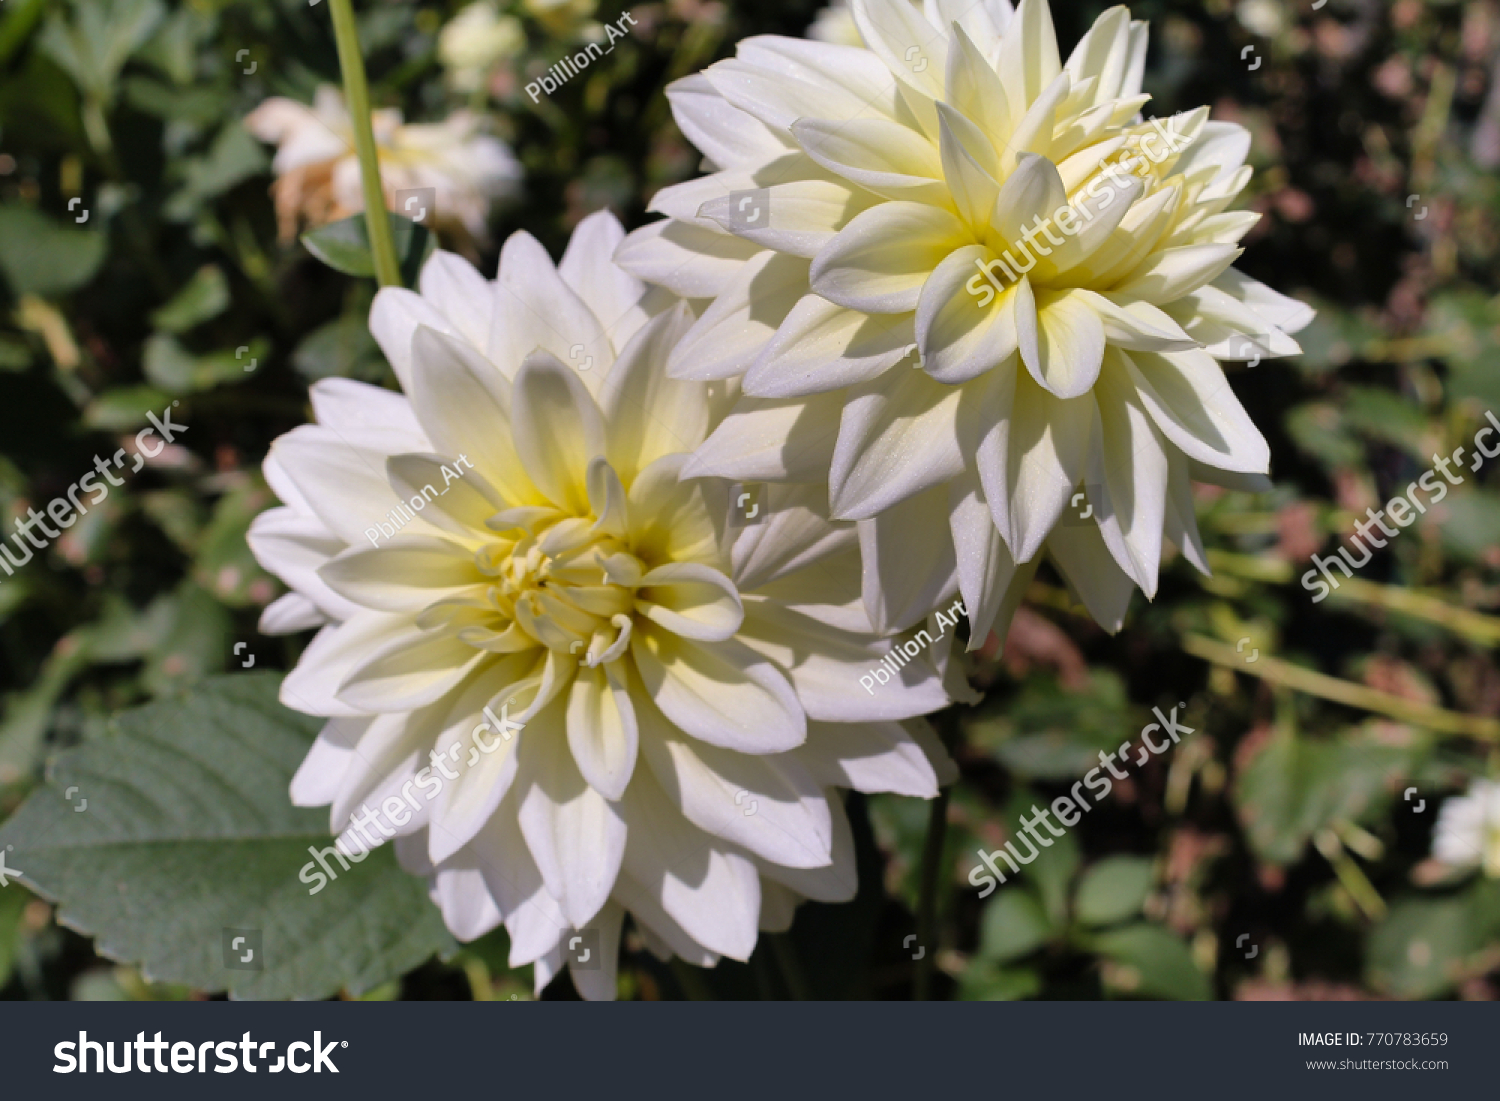 Group Of Flowers With White Petals Look Fresh Clean Ez Canvas